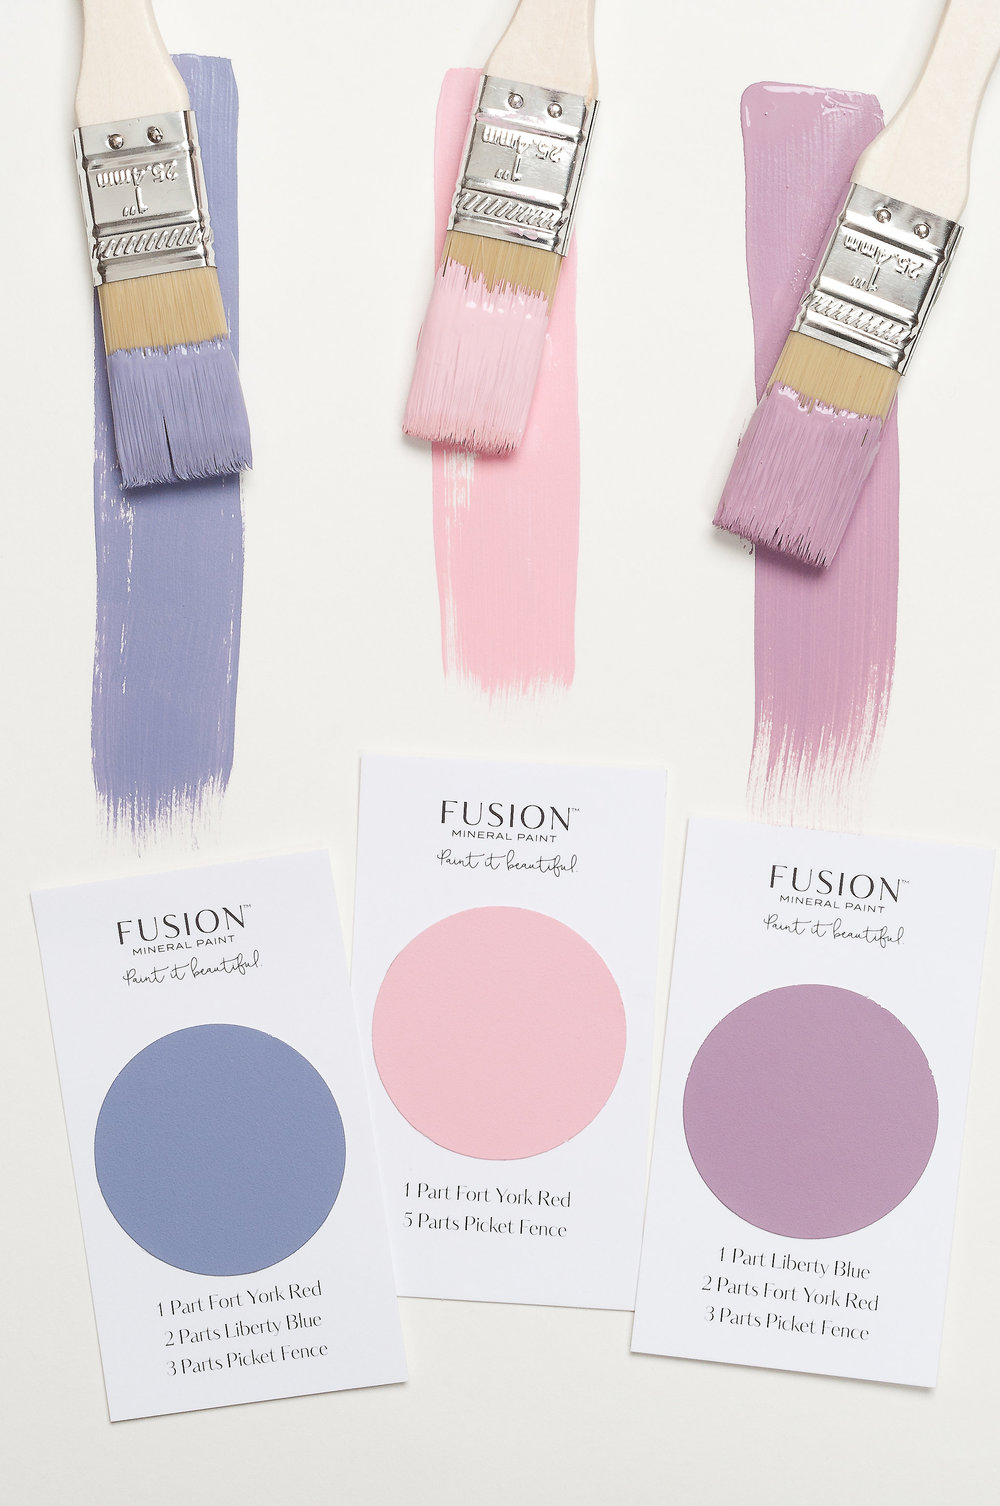 Fusion Mineral Paint has made mixing paint simple. They have created 32 recipe cards so that you can mix up all sorts of new colours!